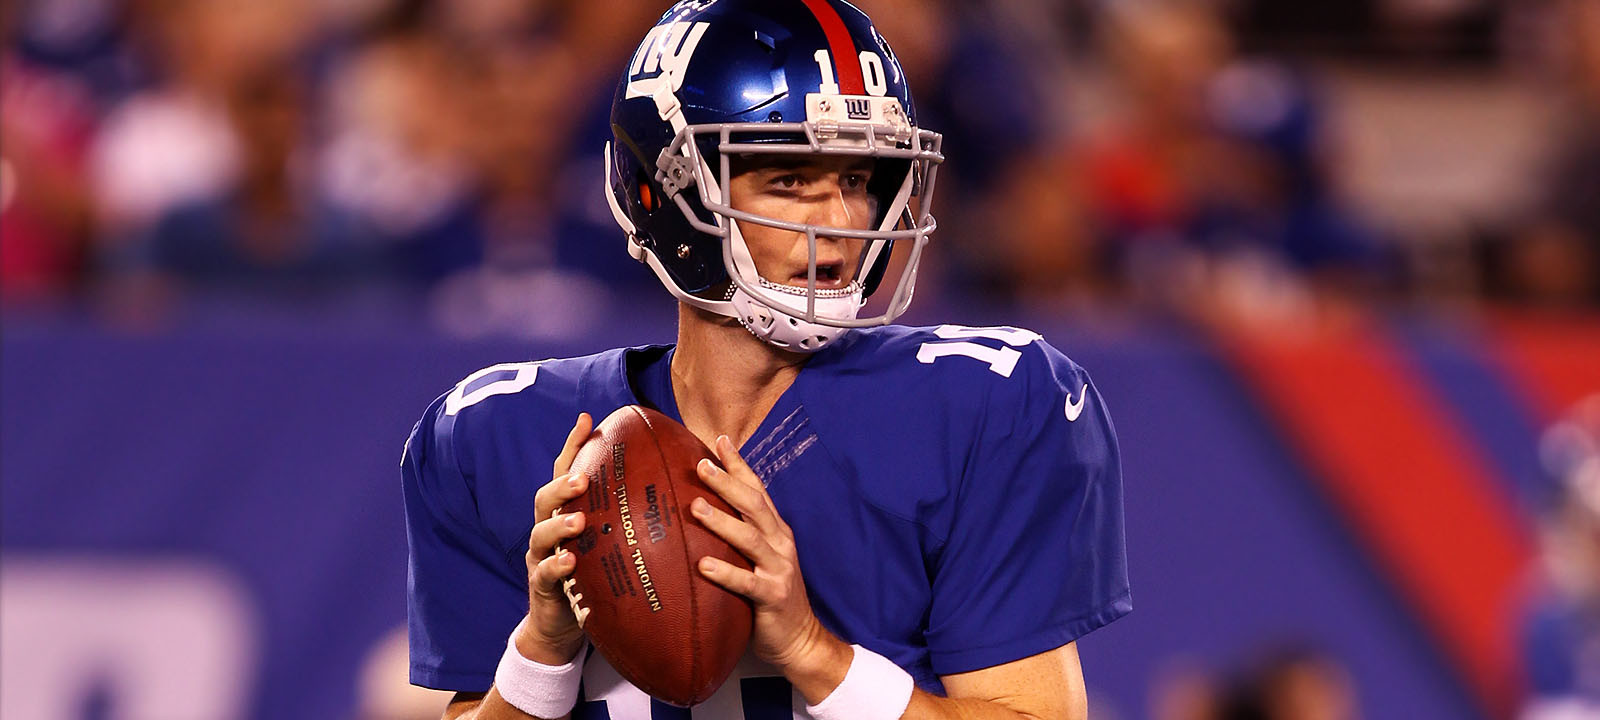 Giants look to bounce back in '15